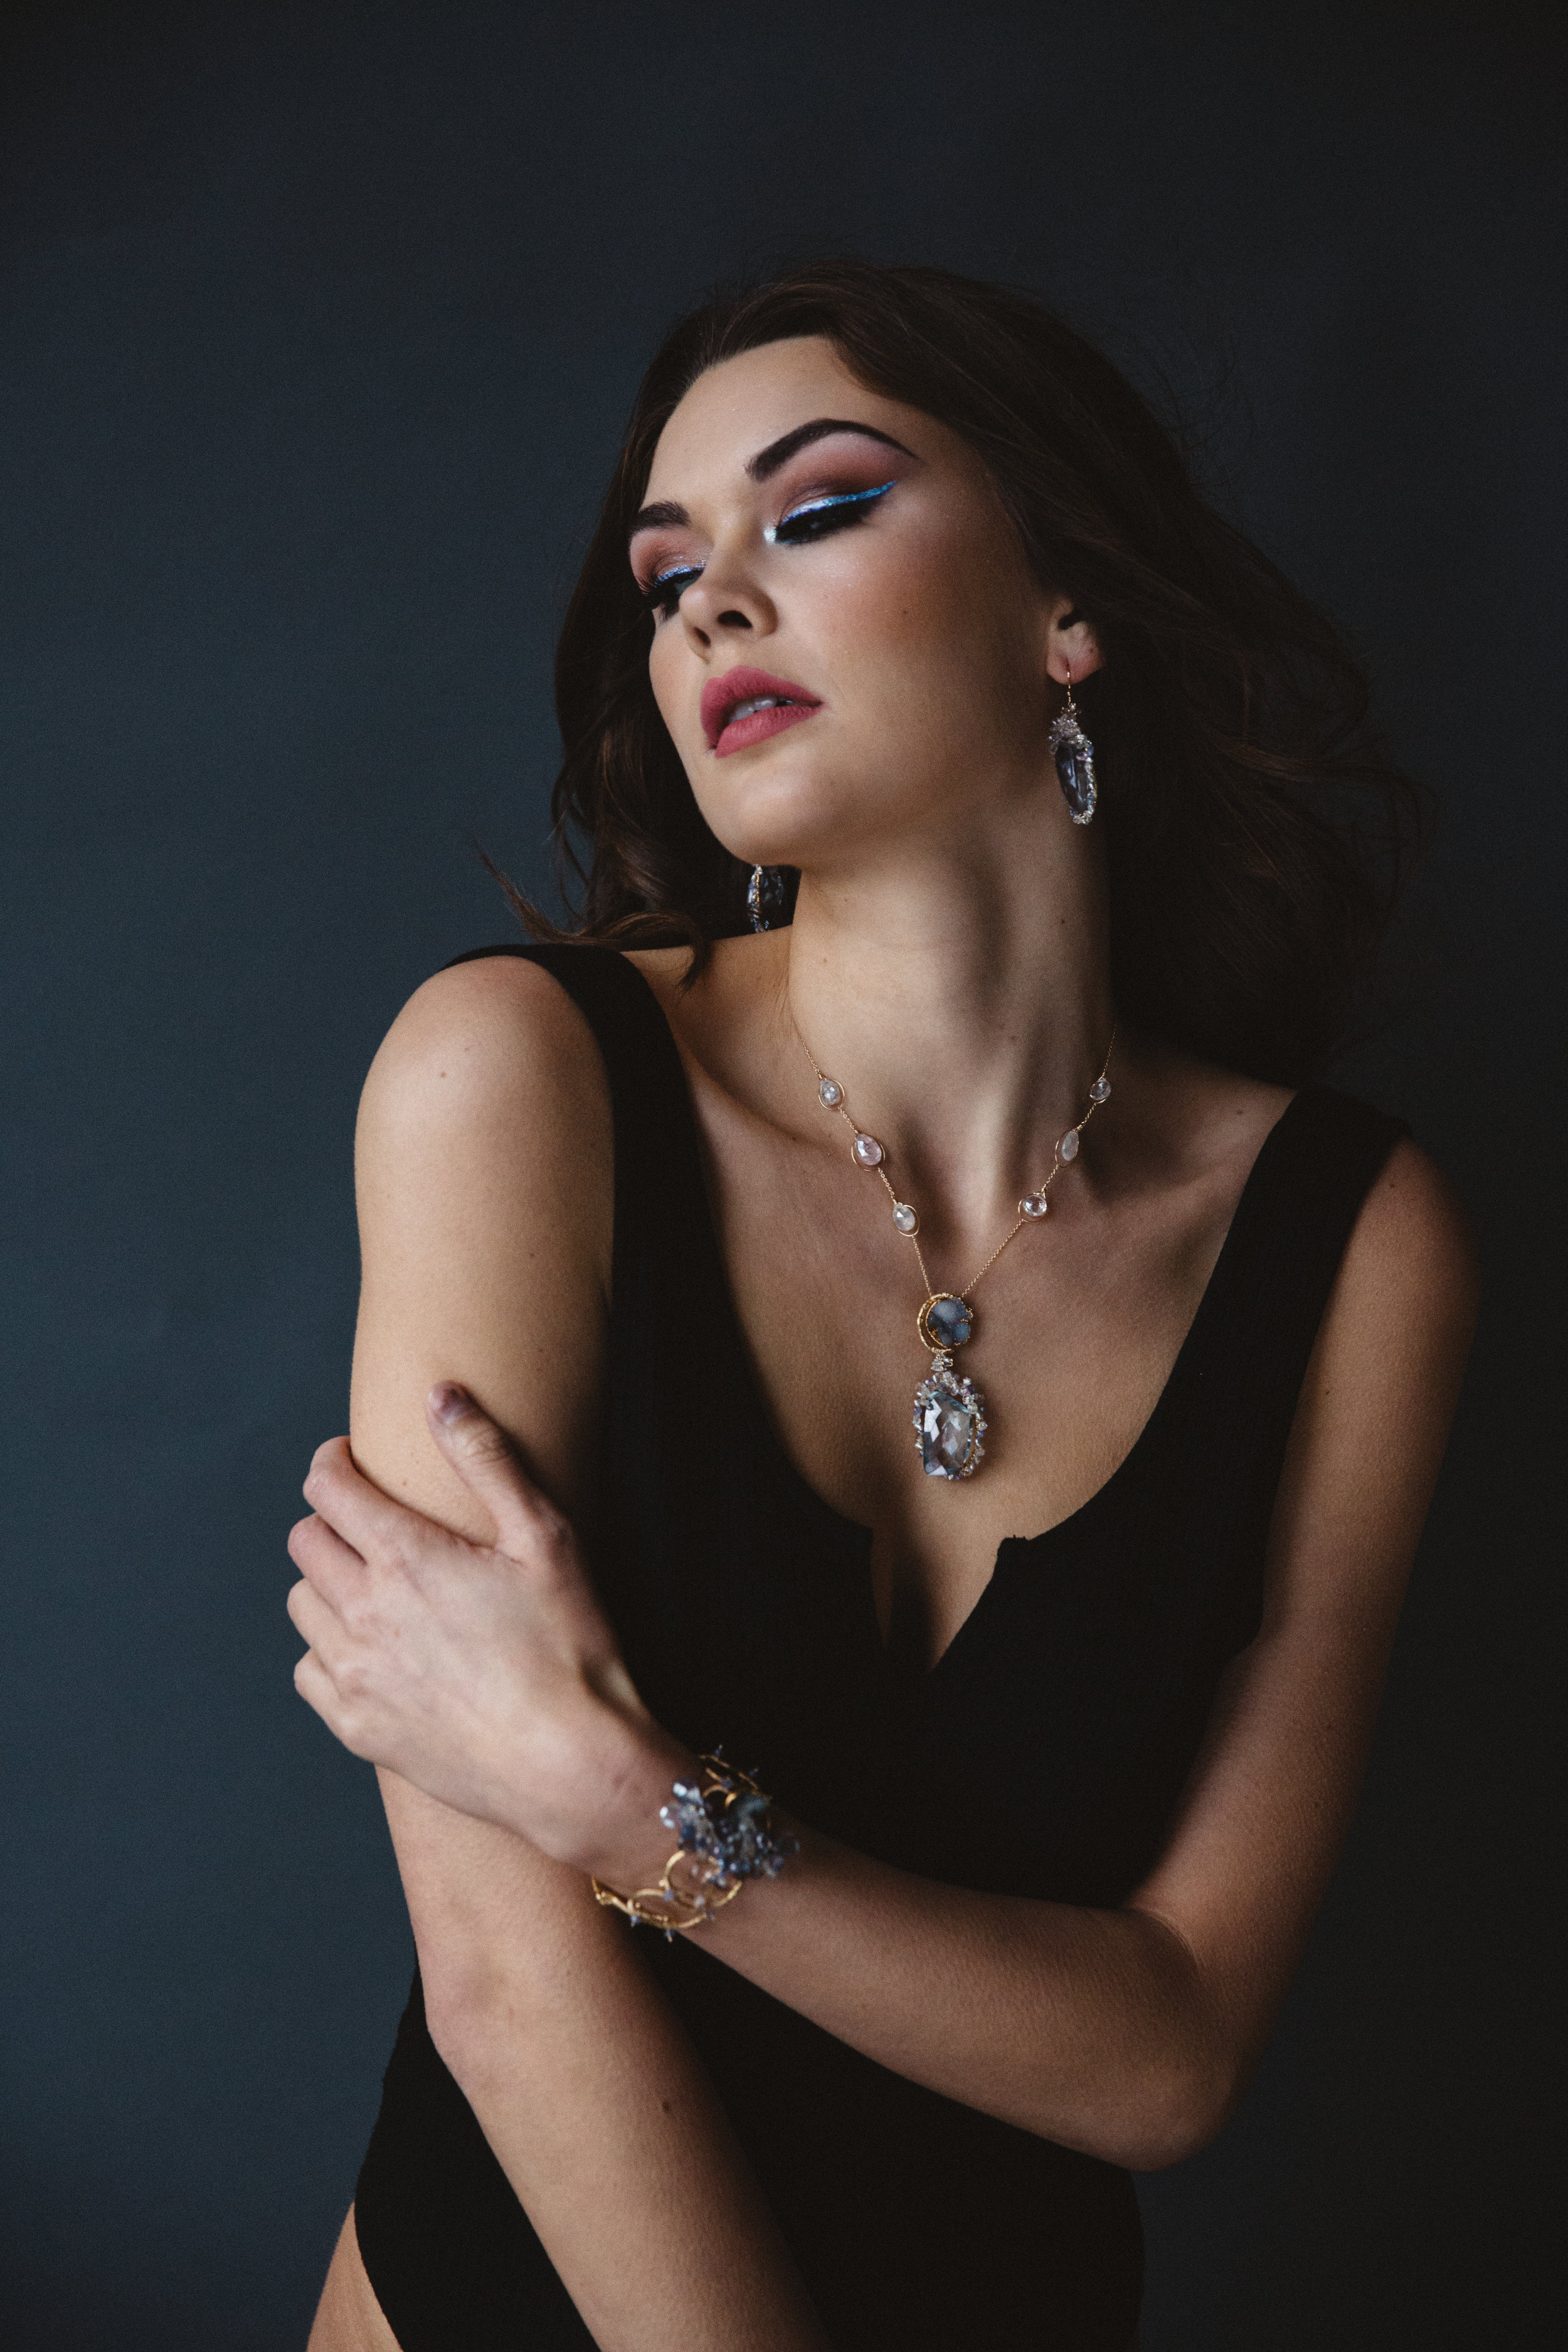 model wearing sapphire and druzy pendant necklace